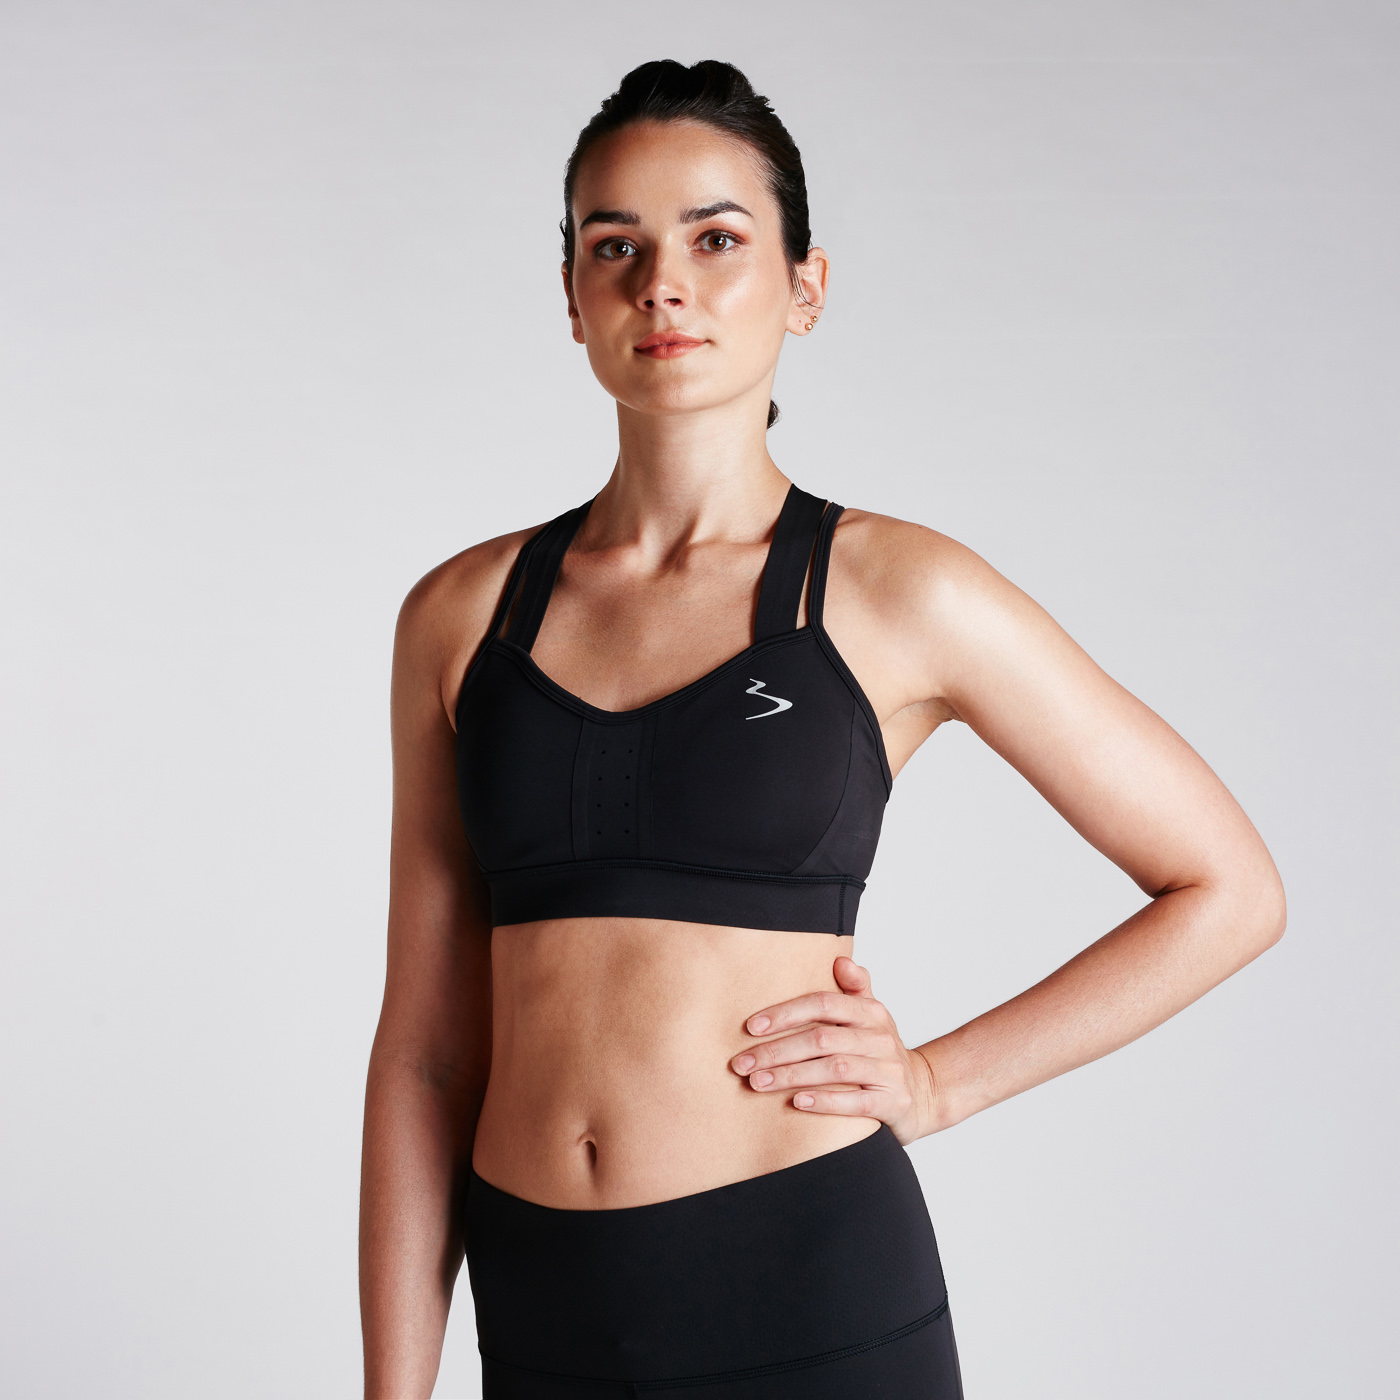 Women's Elite Intent Power Bra